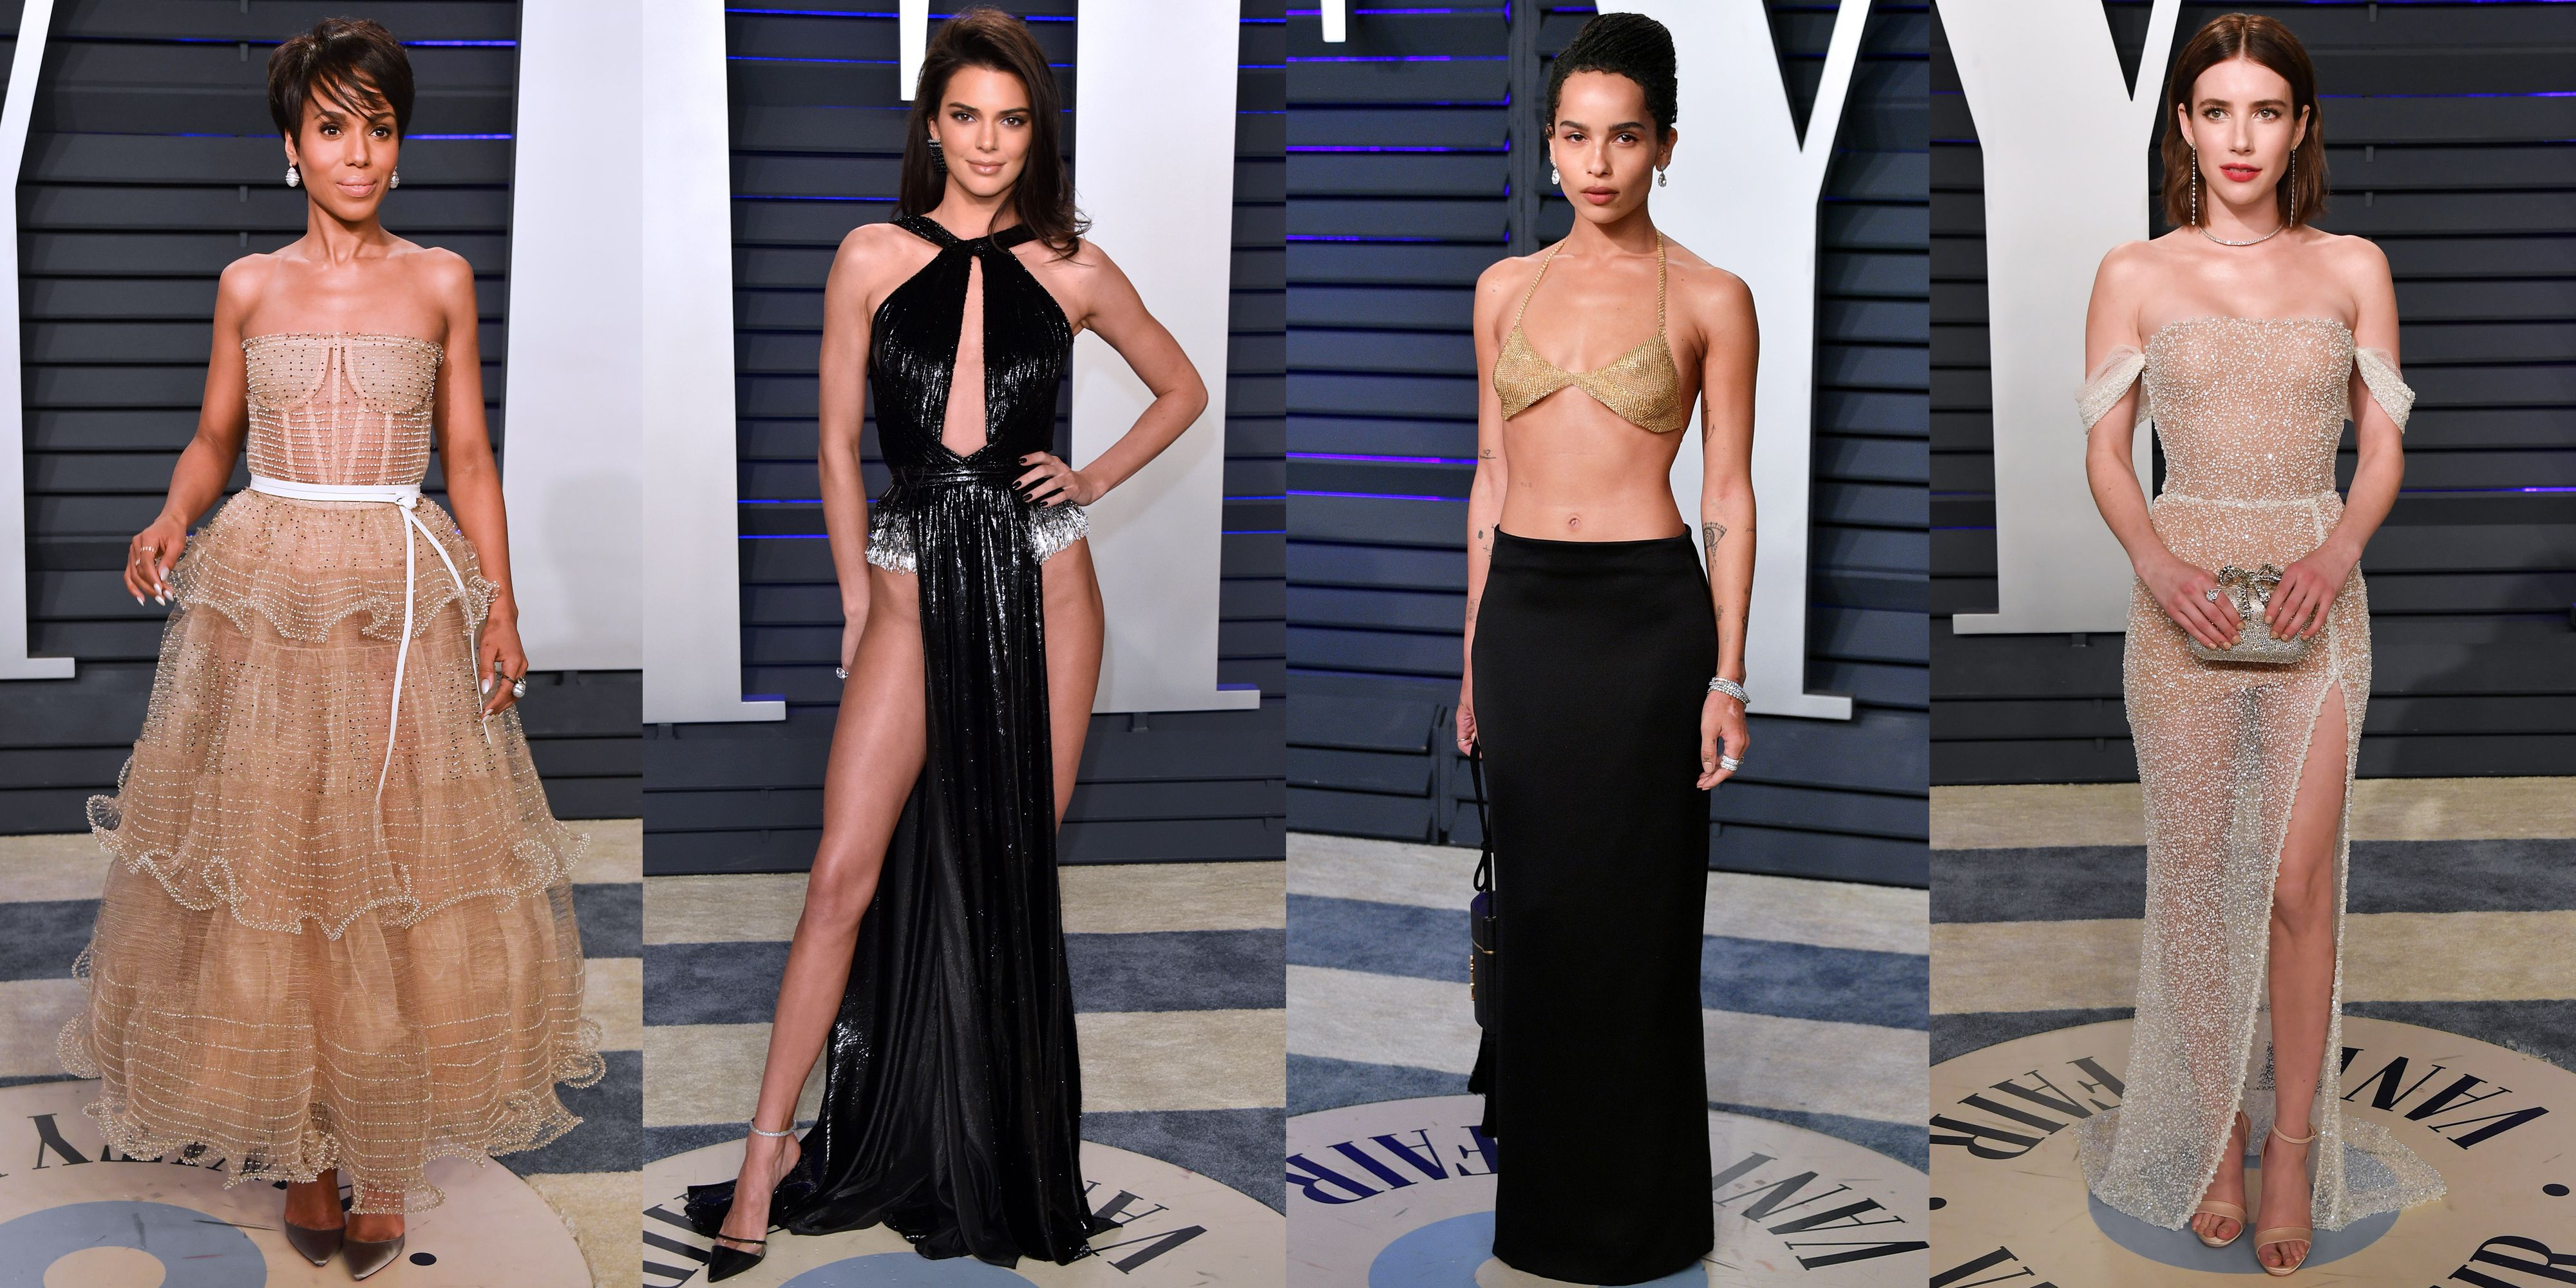 The Most Stunning Outfits From the Oscars After-Parties